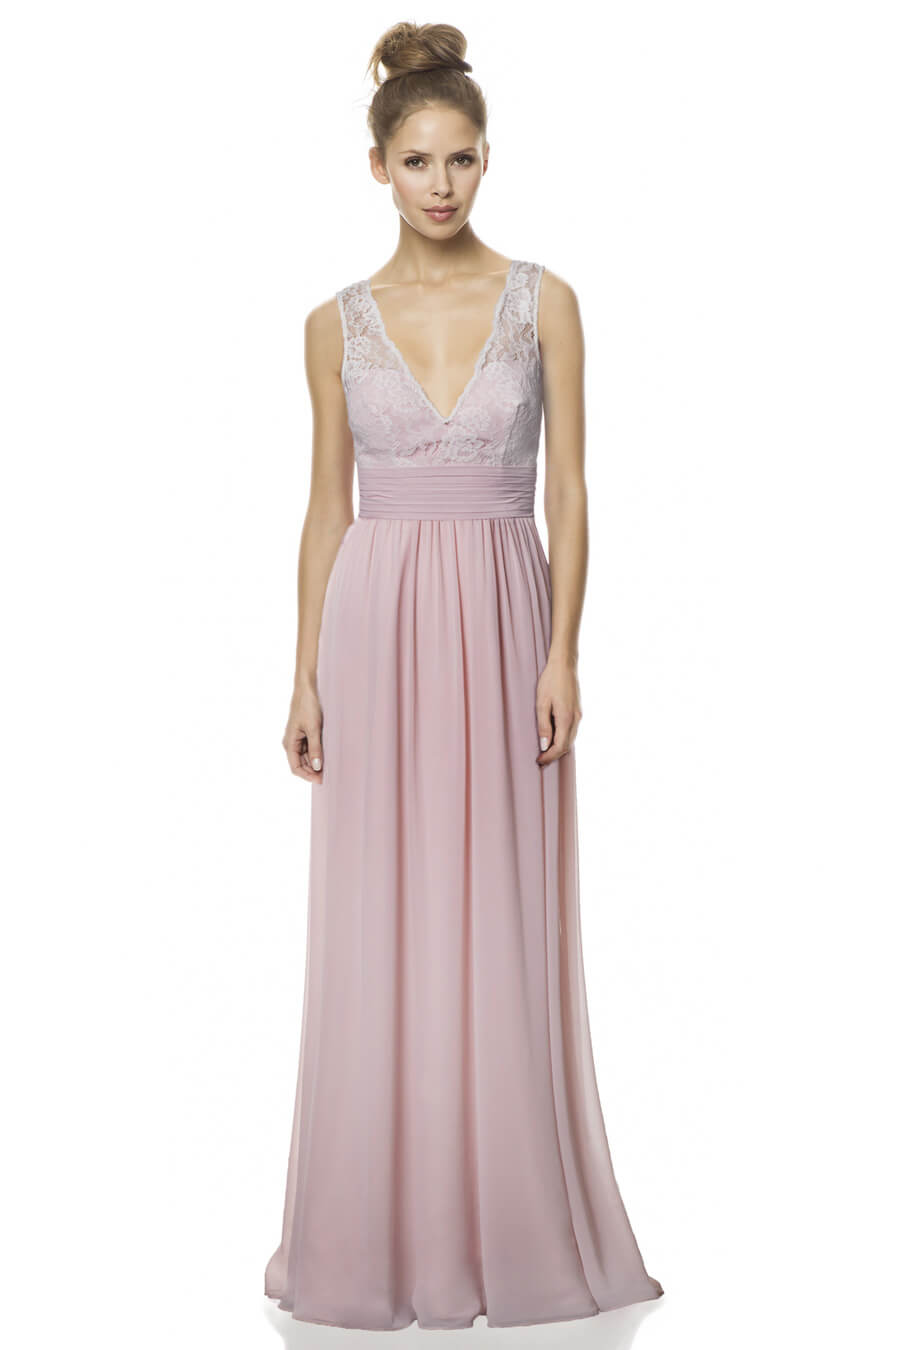 STYLE: 1466 | Bridesmaid Dresses, Evening Gowns & Flower Girl ...